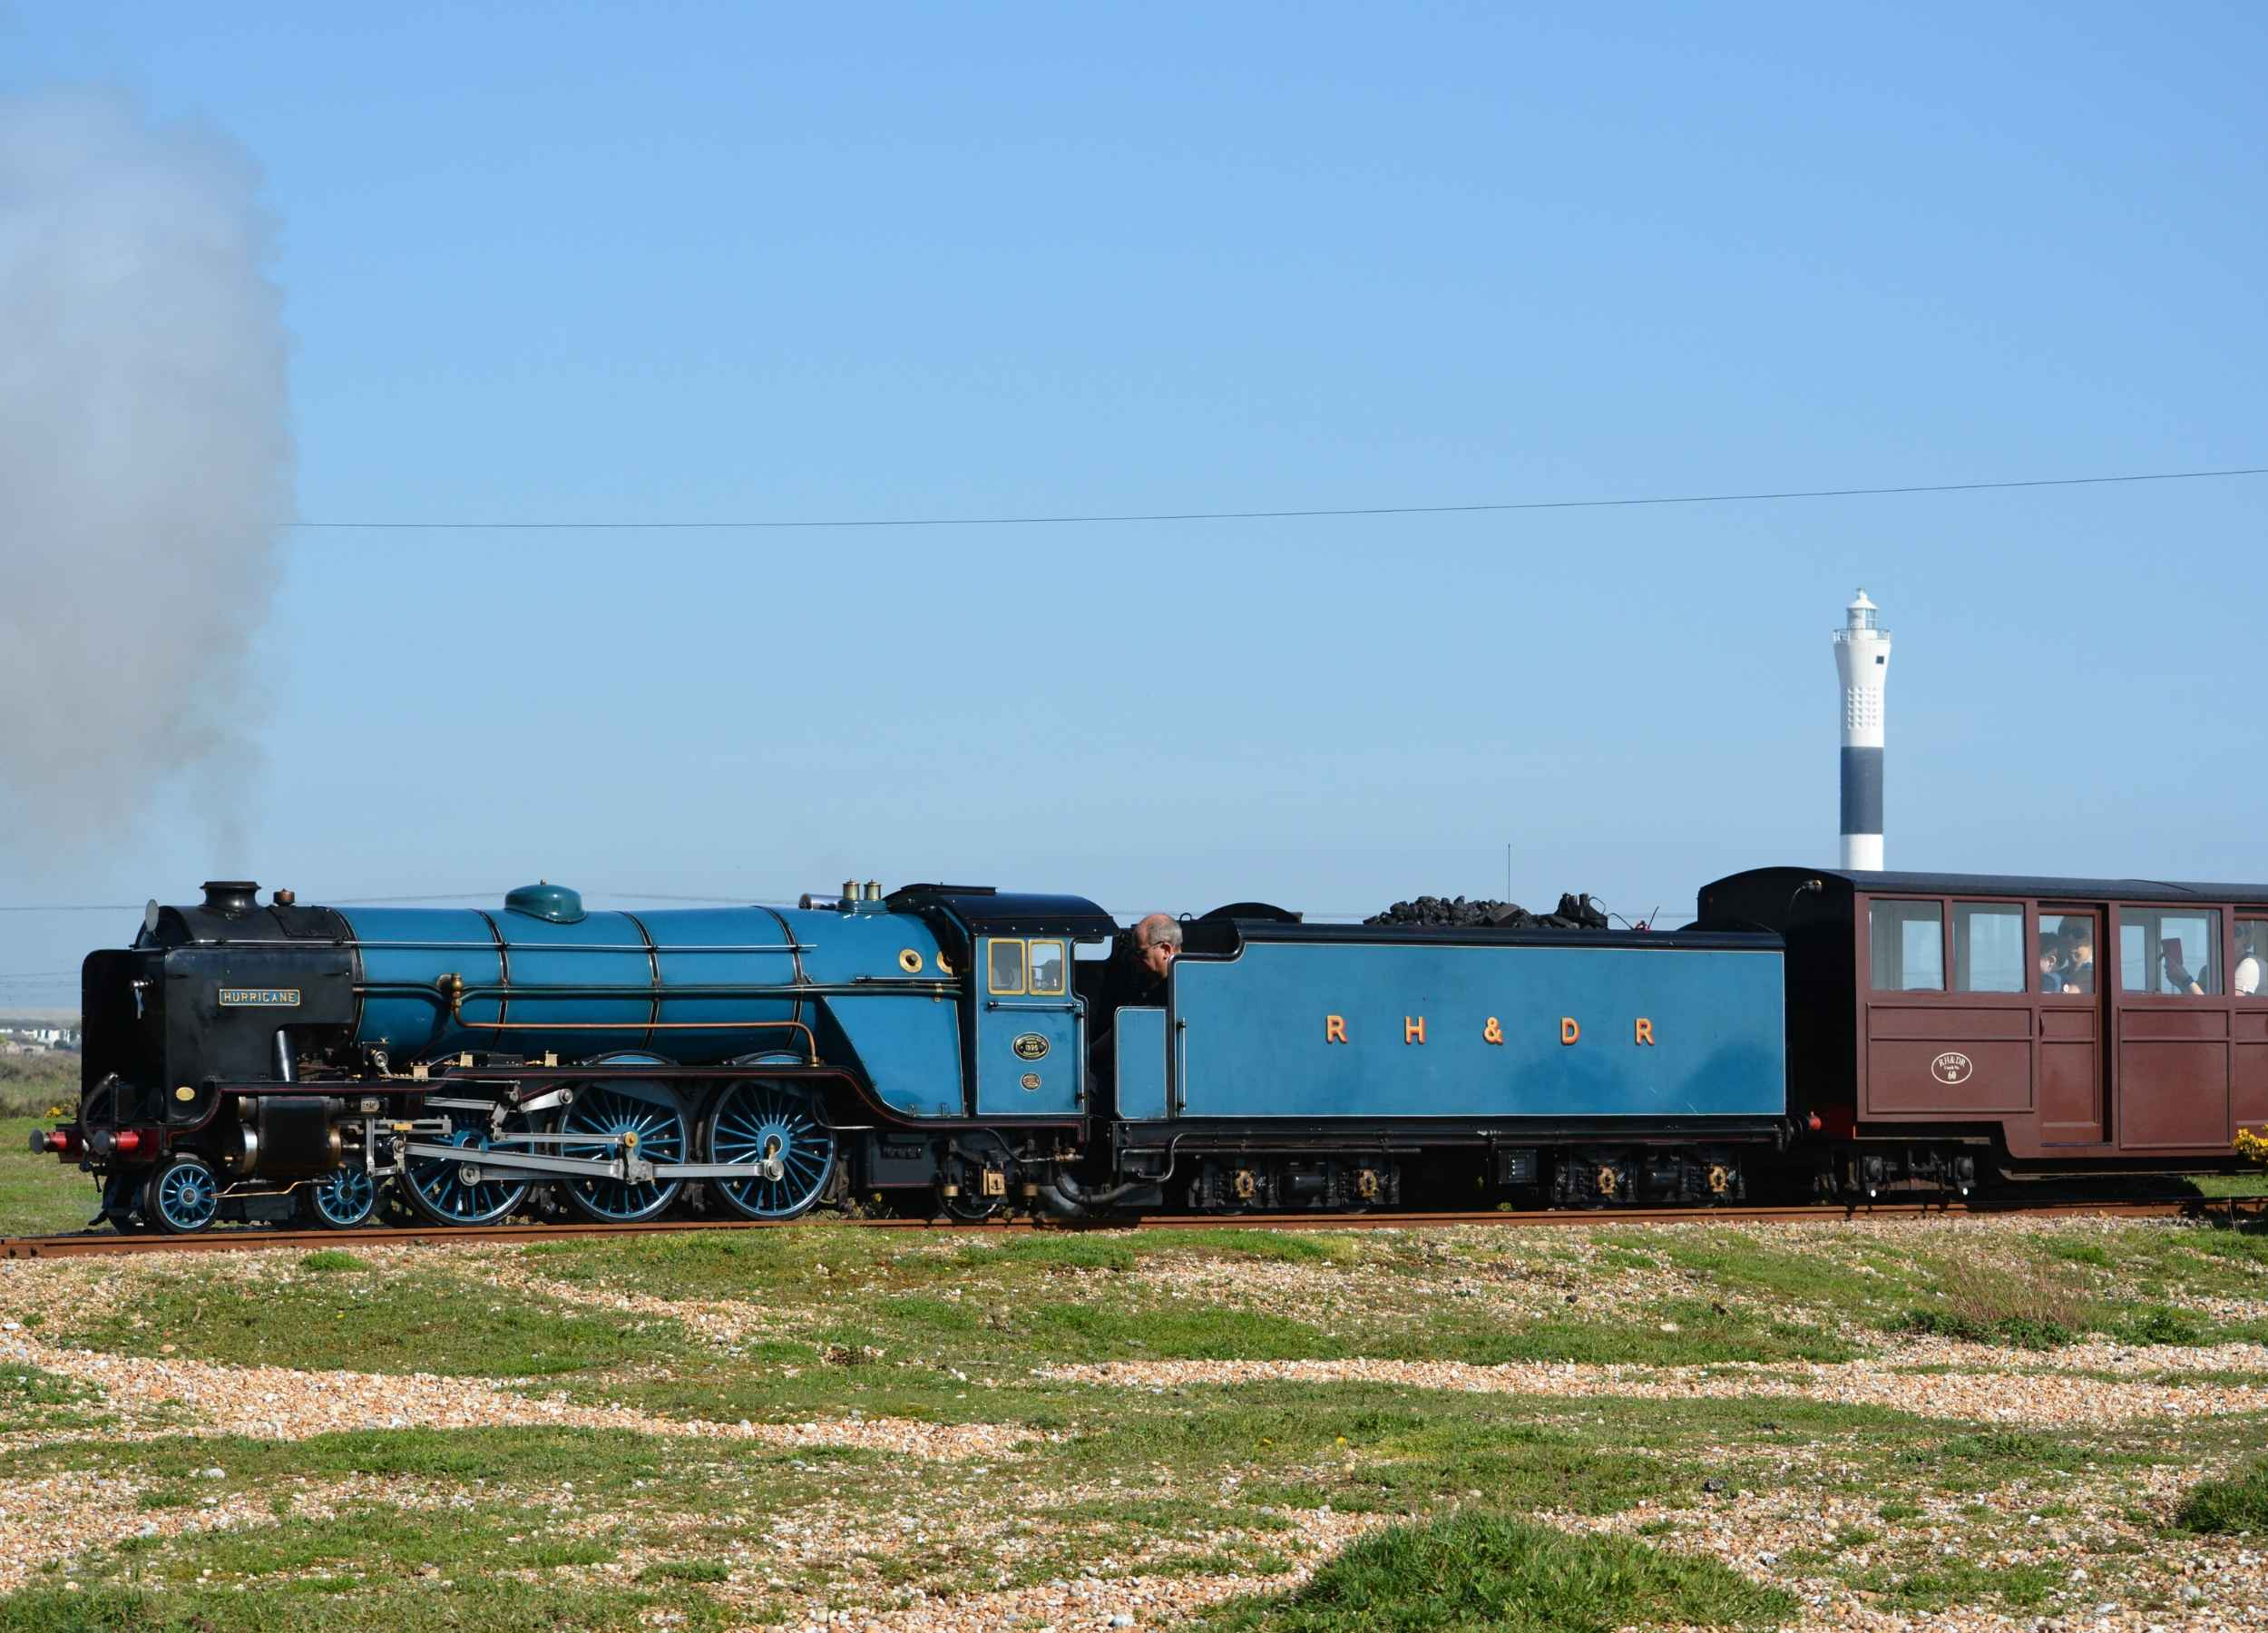 Journeys at Romney, Hythe & Dymchurch Railway